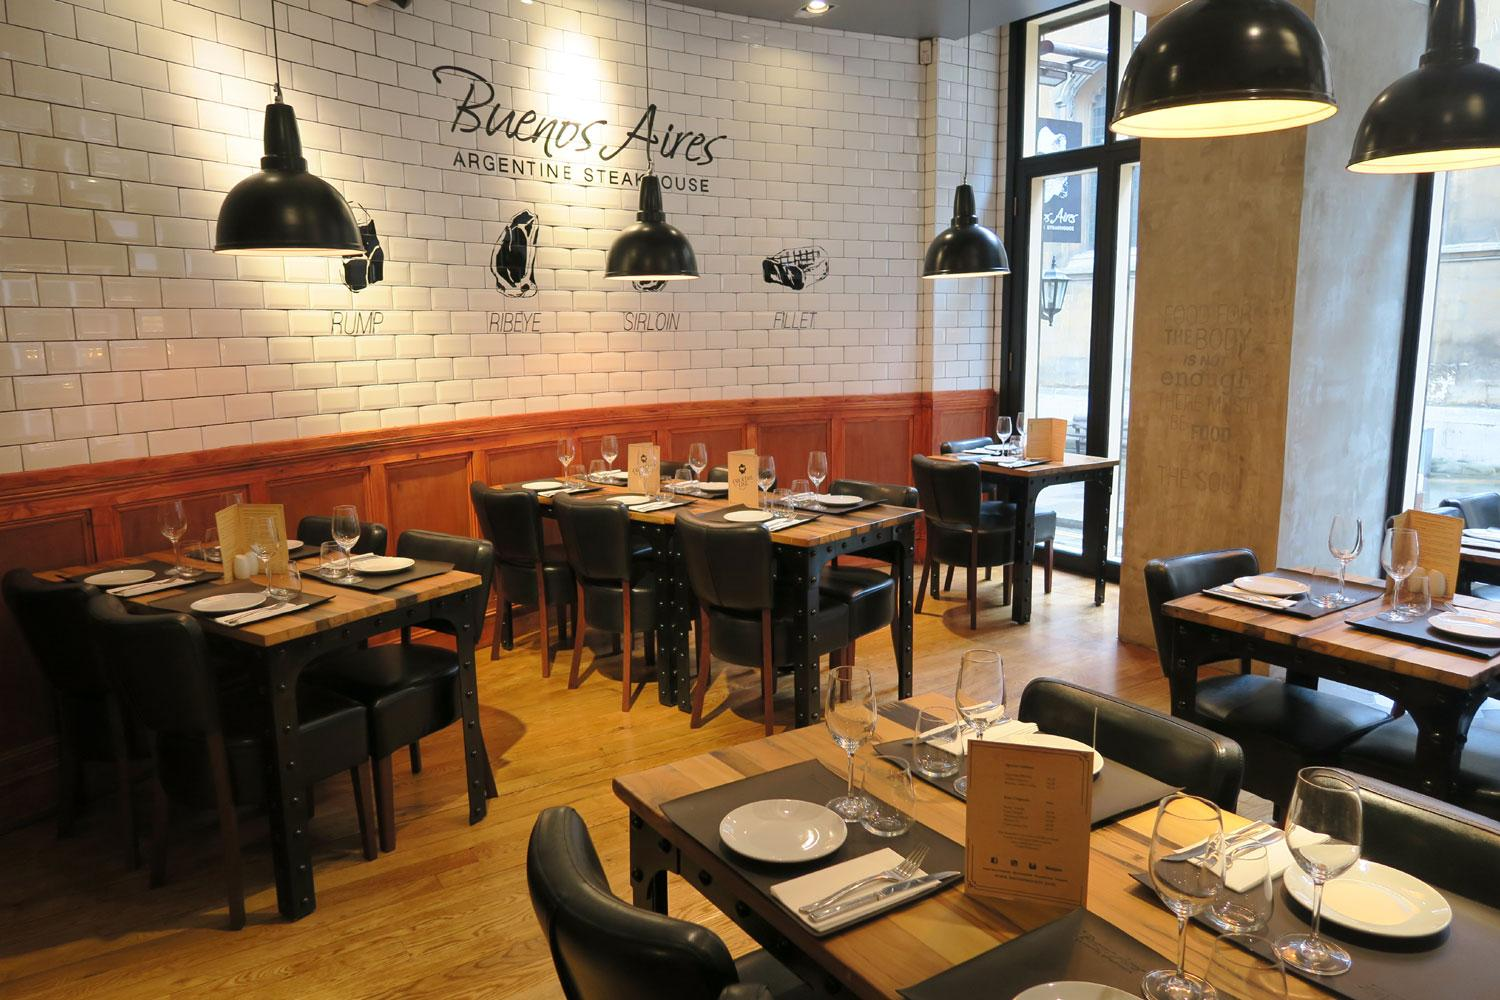 Reserve a table at Buenos Aires Argentine Steakhouse - City of London